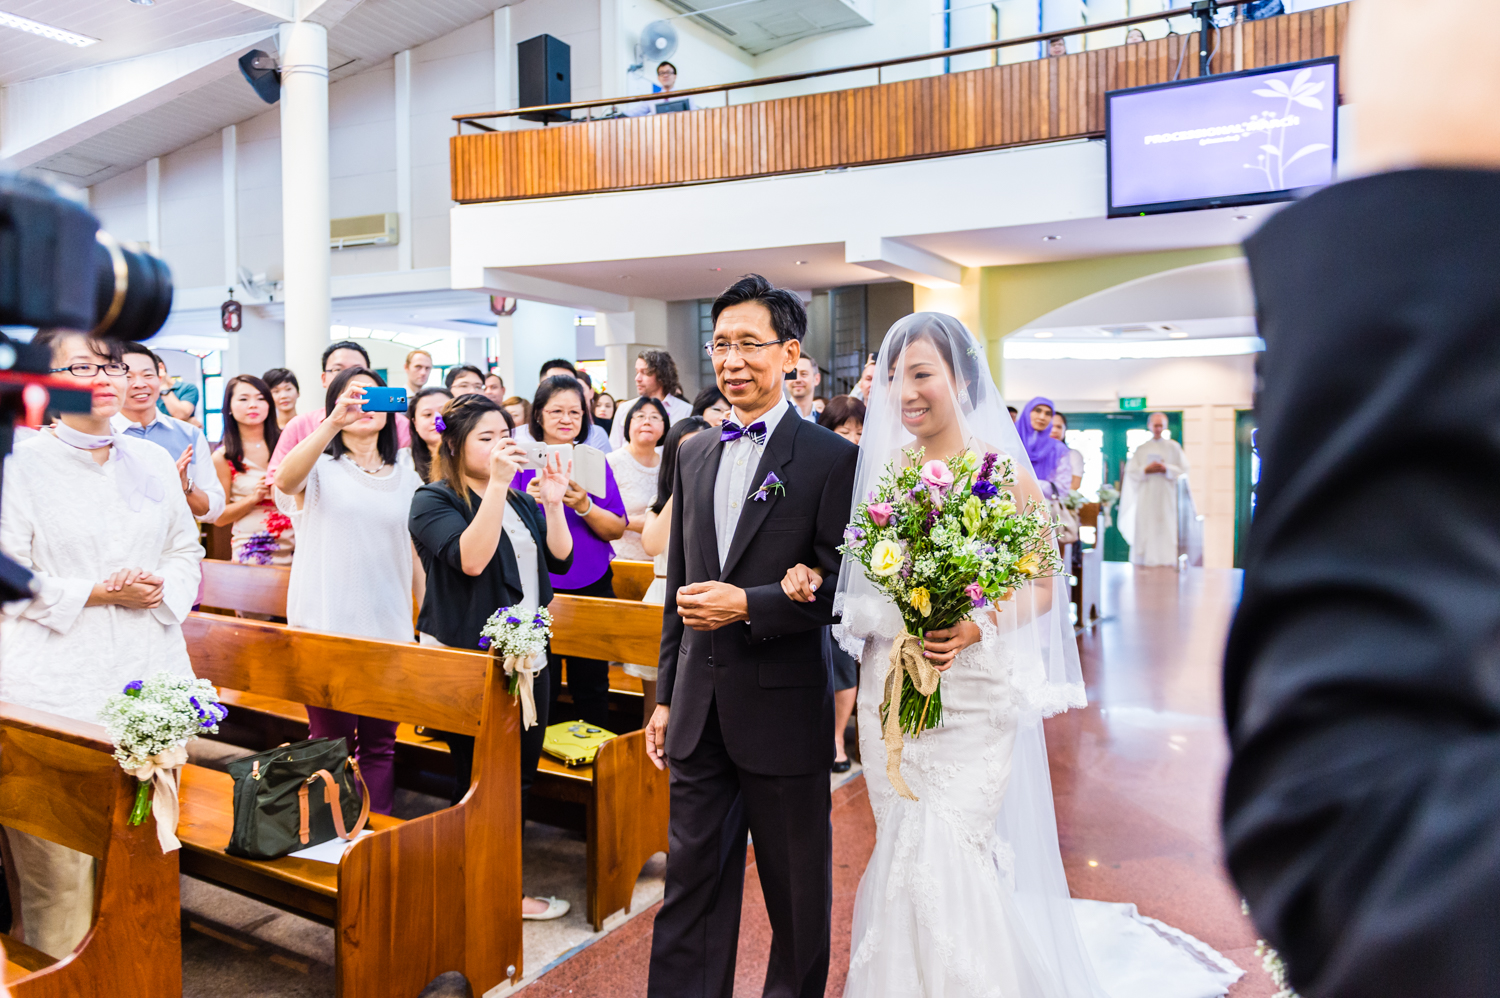 wedding at Church of Our Lady of Perpetual Succour6.jpg